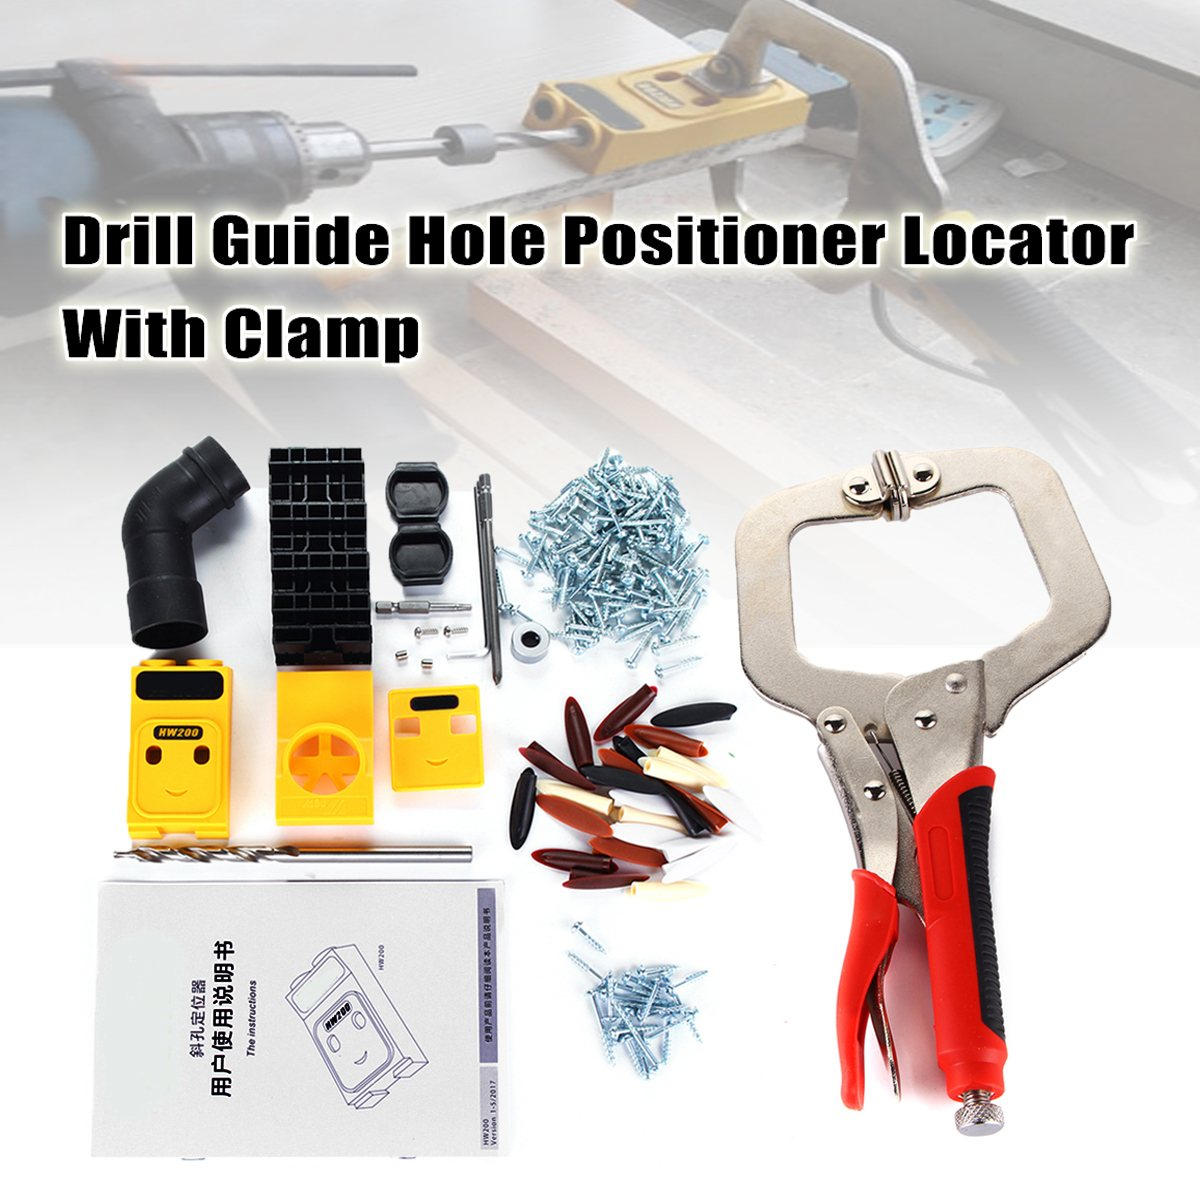 New Pocket-Hole Jig Drill Guide Hole Positioner Locator with Clamp Woodworking Tool Kit  Suitable for Joining Panel Furniture woodworking tool pocket hole jig woodwork guide repair carpenter kit system with toggle clamp and step drilling bit kreg type